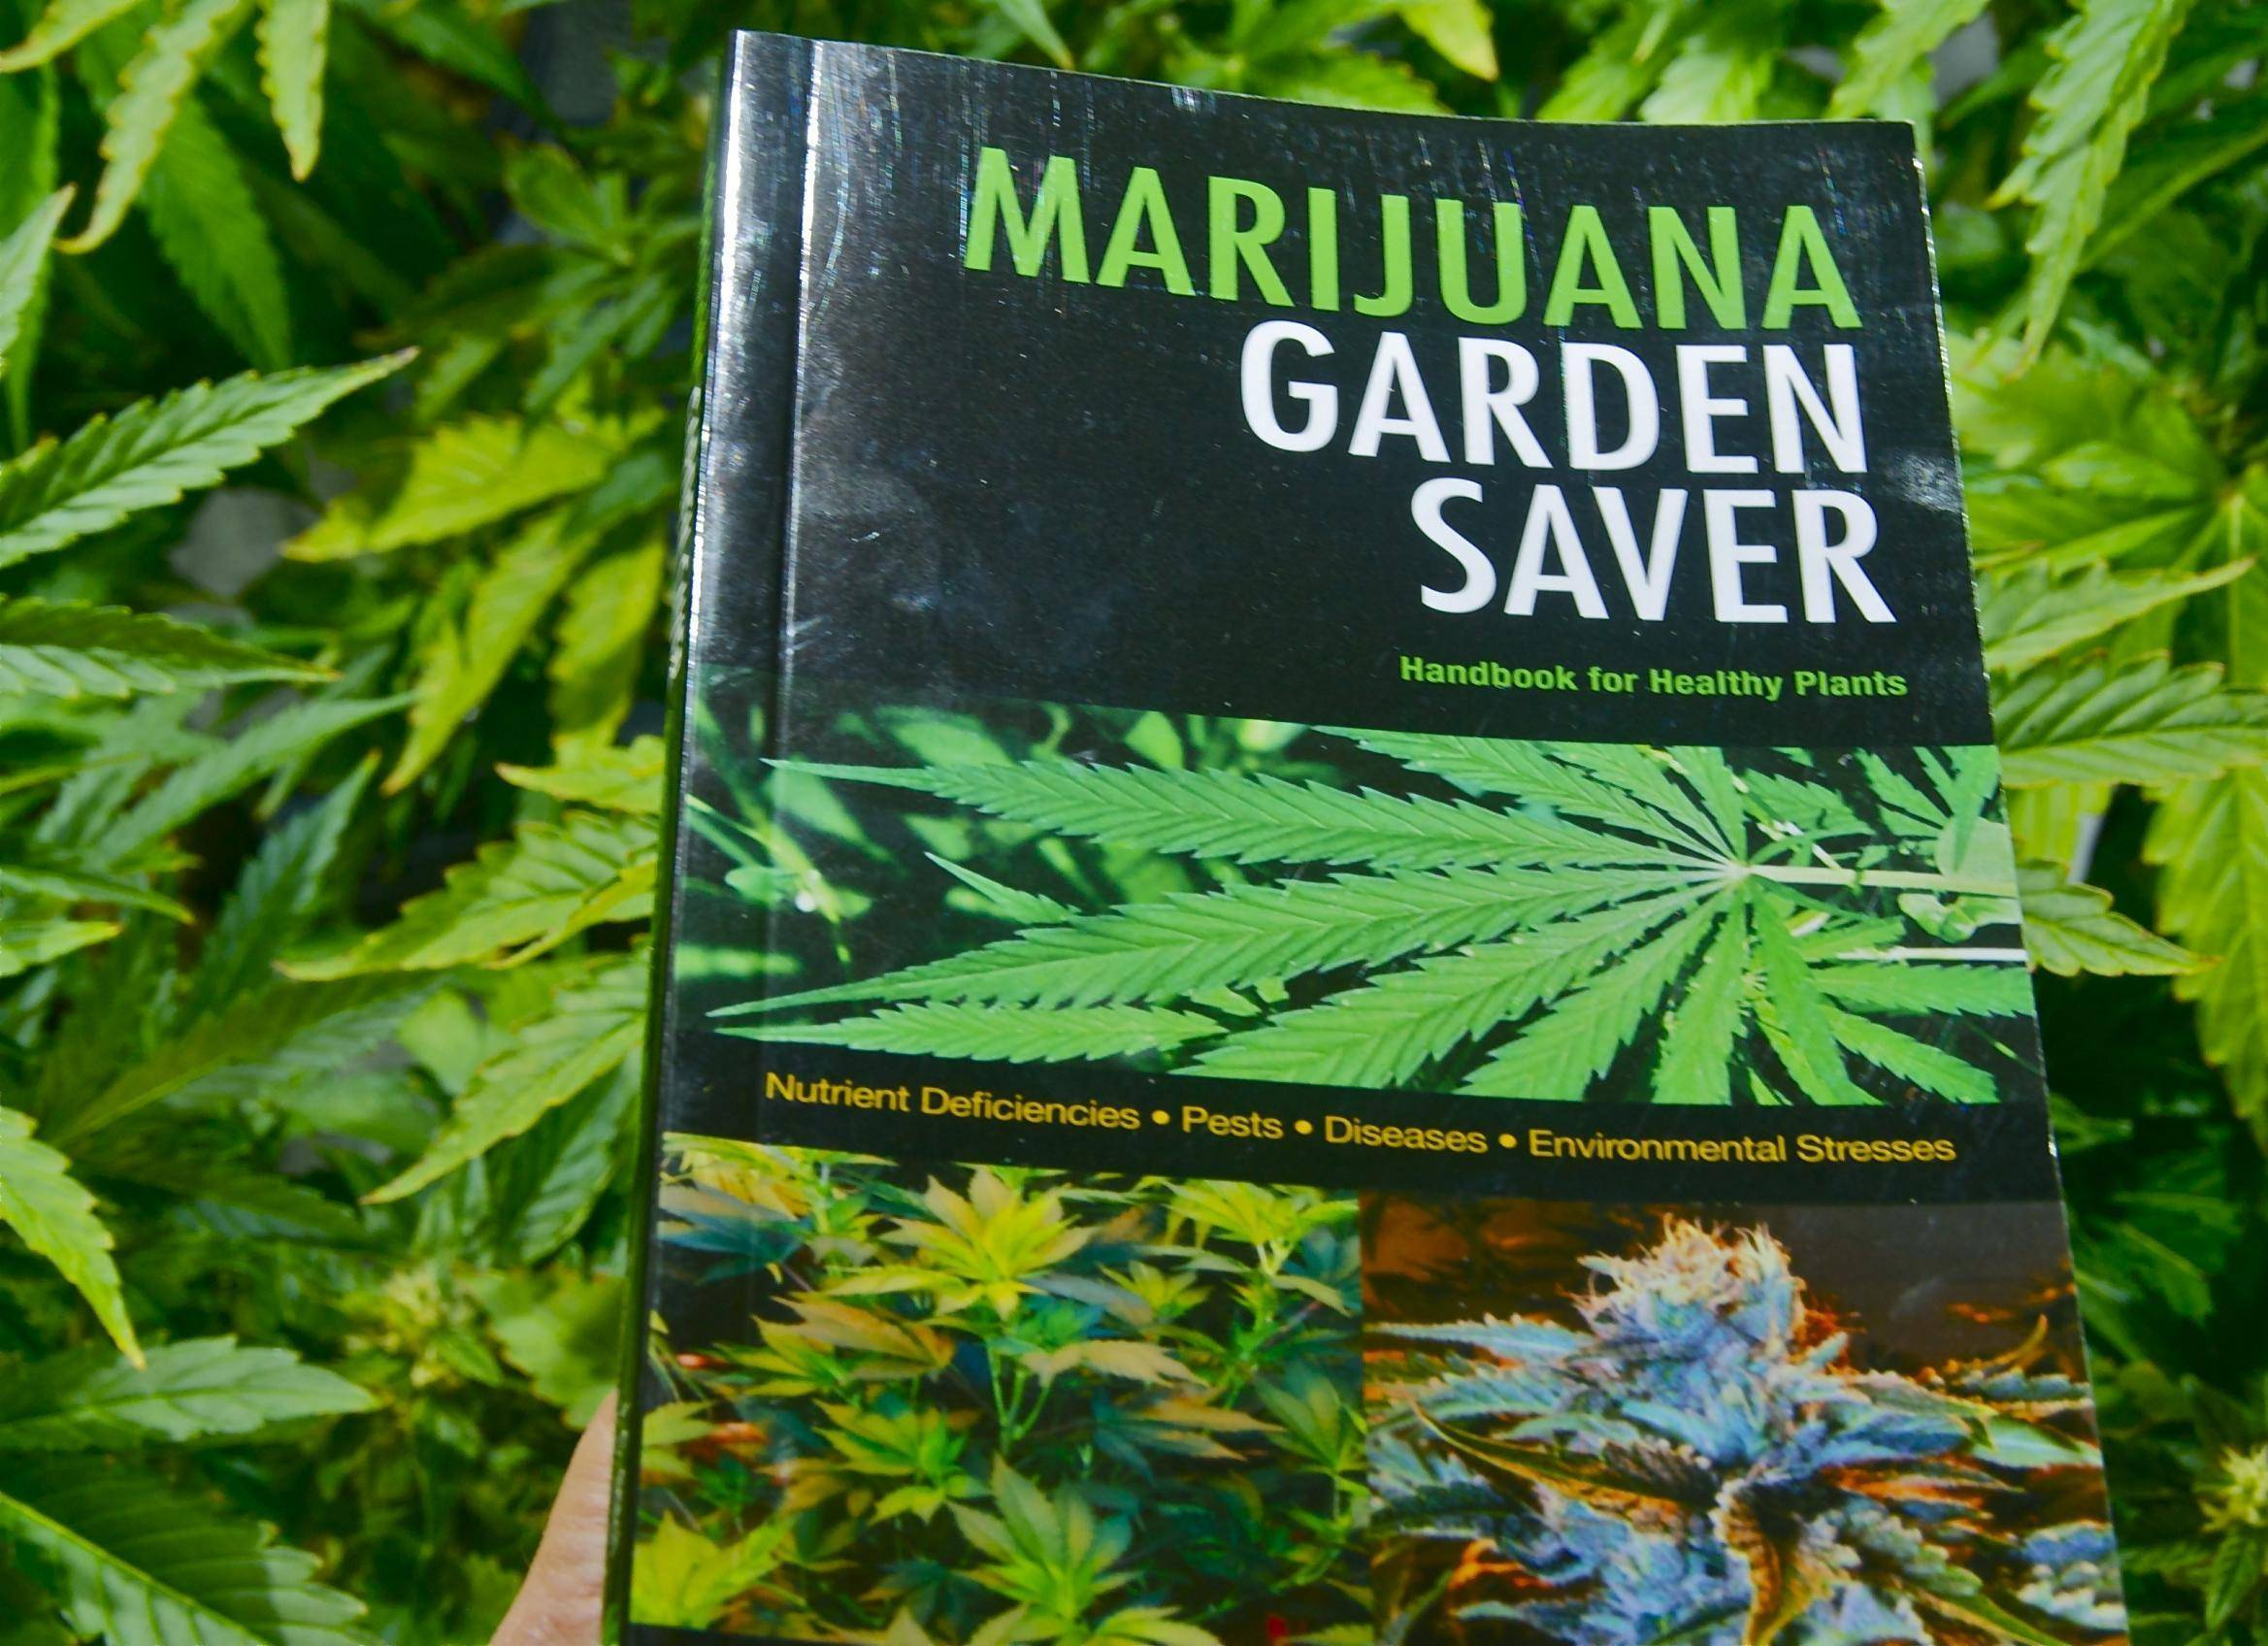 Marijuana garden saver book